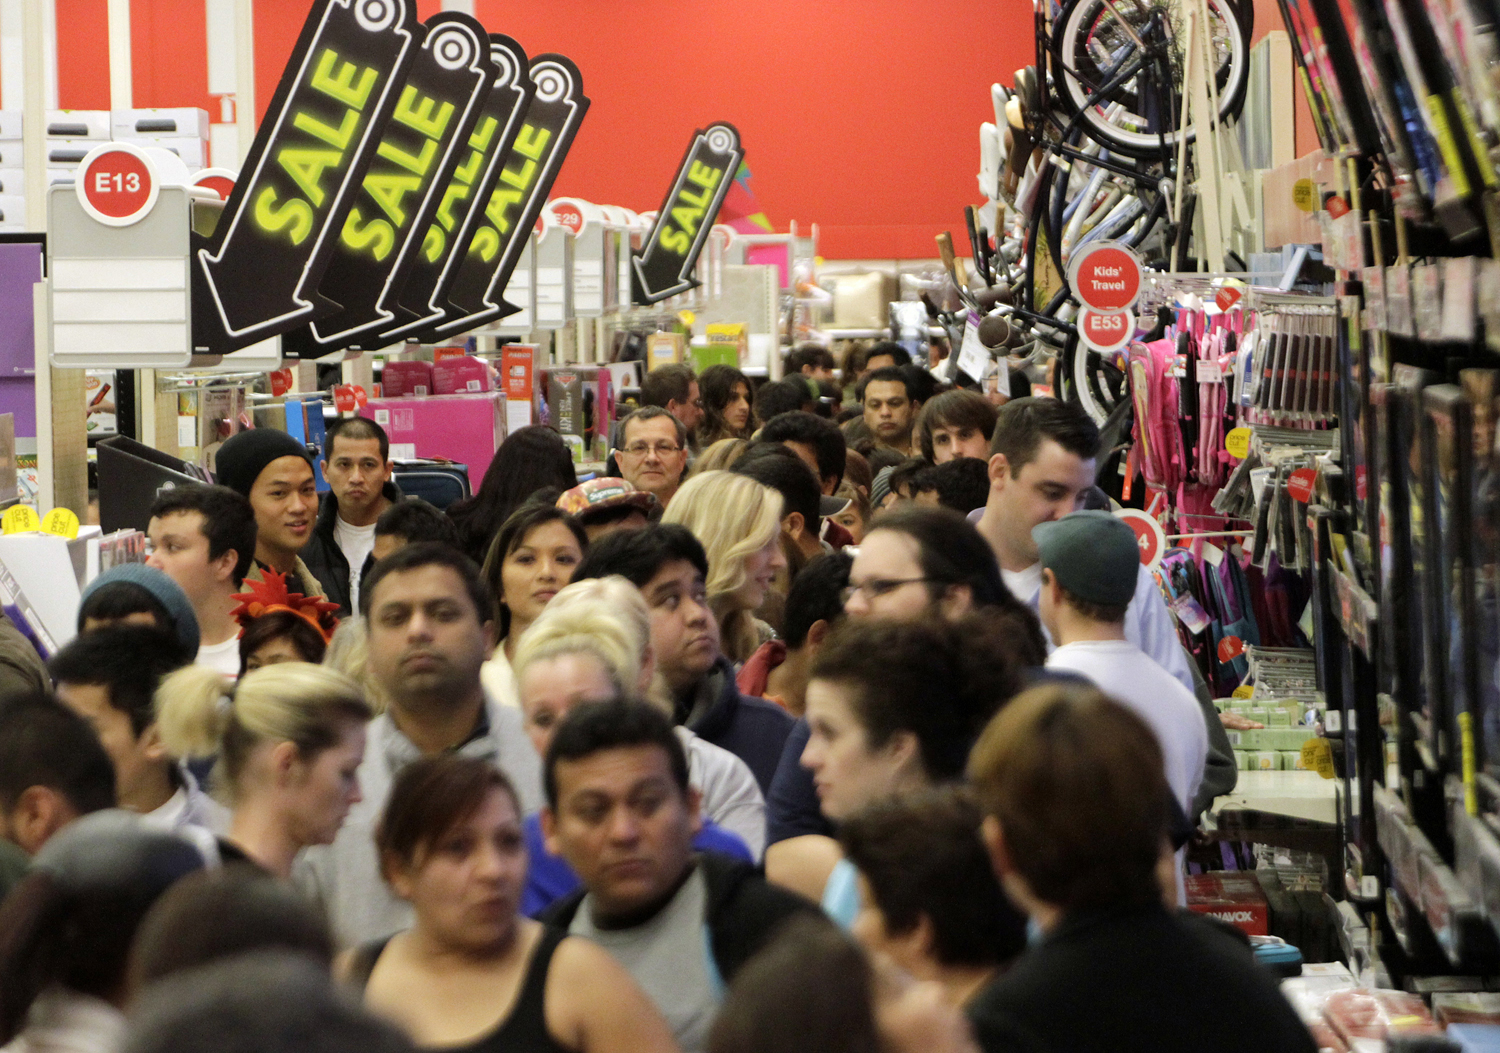 A crowd of shoppers browse at Target on the Thanksgiving Day holiday in Burbank, California November 22, 2012. The shopping frenzy known as